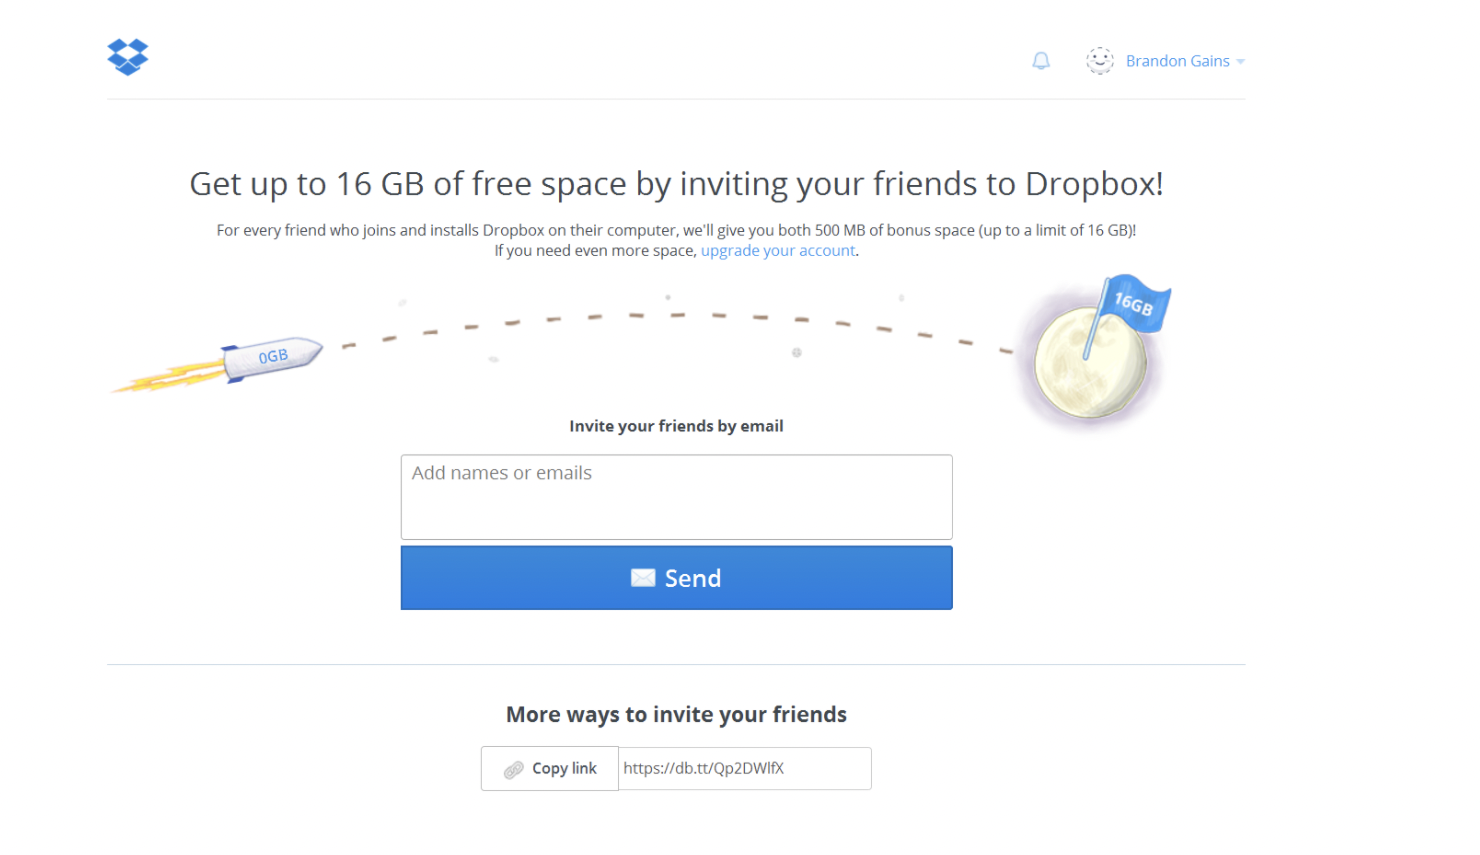 word of mouth marketing example Dropbox - Growth Through Referrals